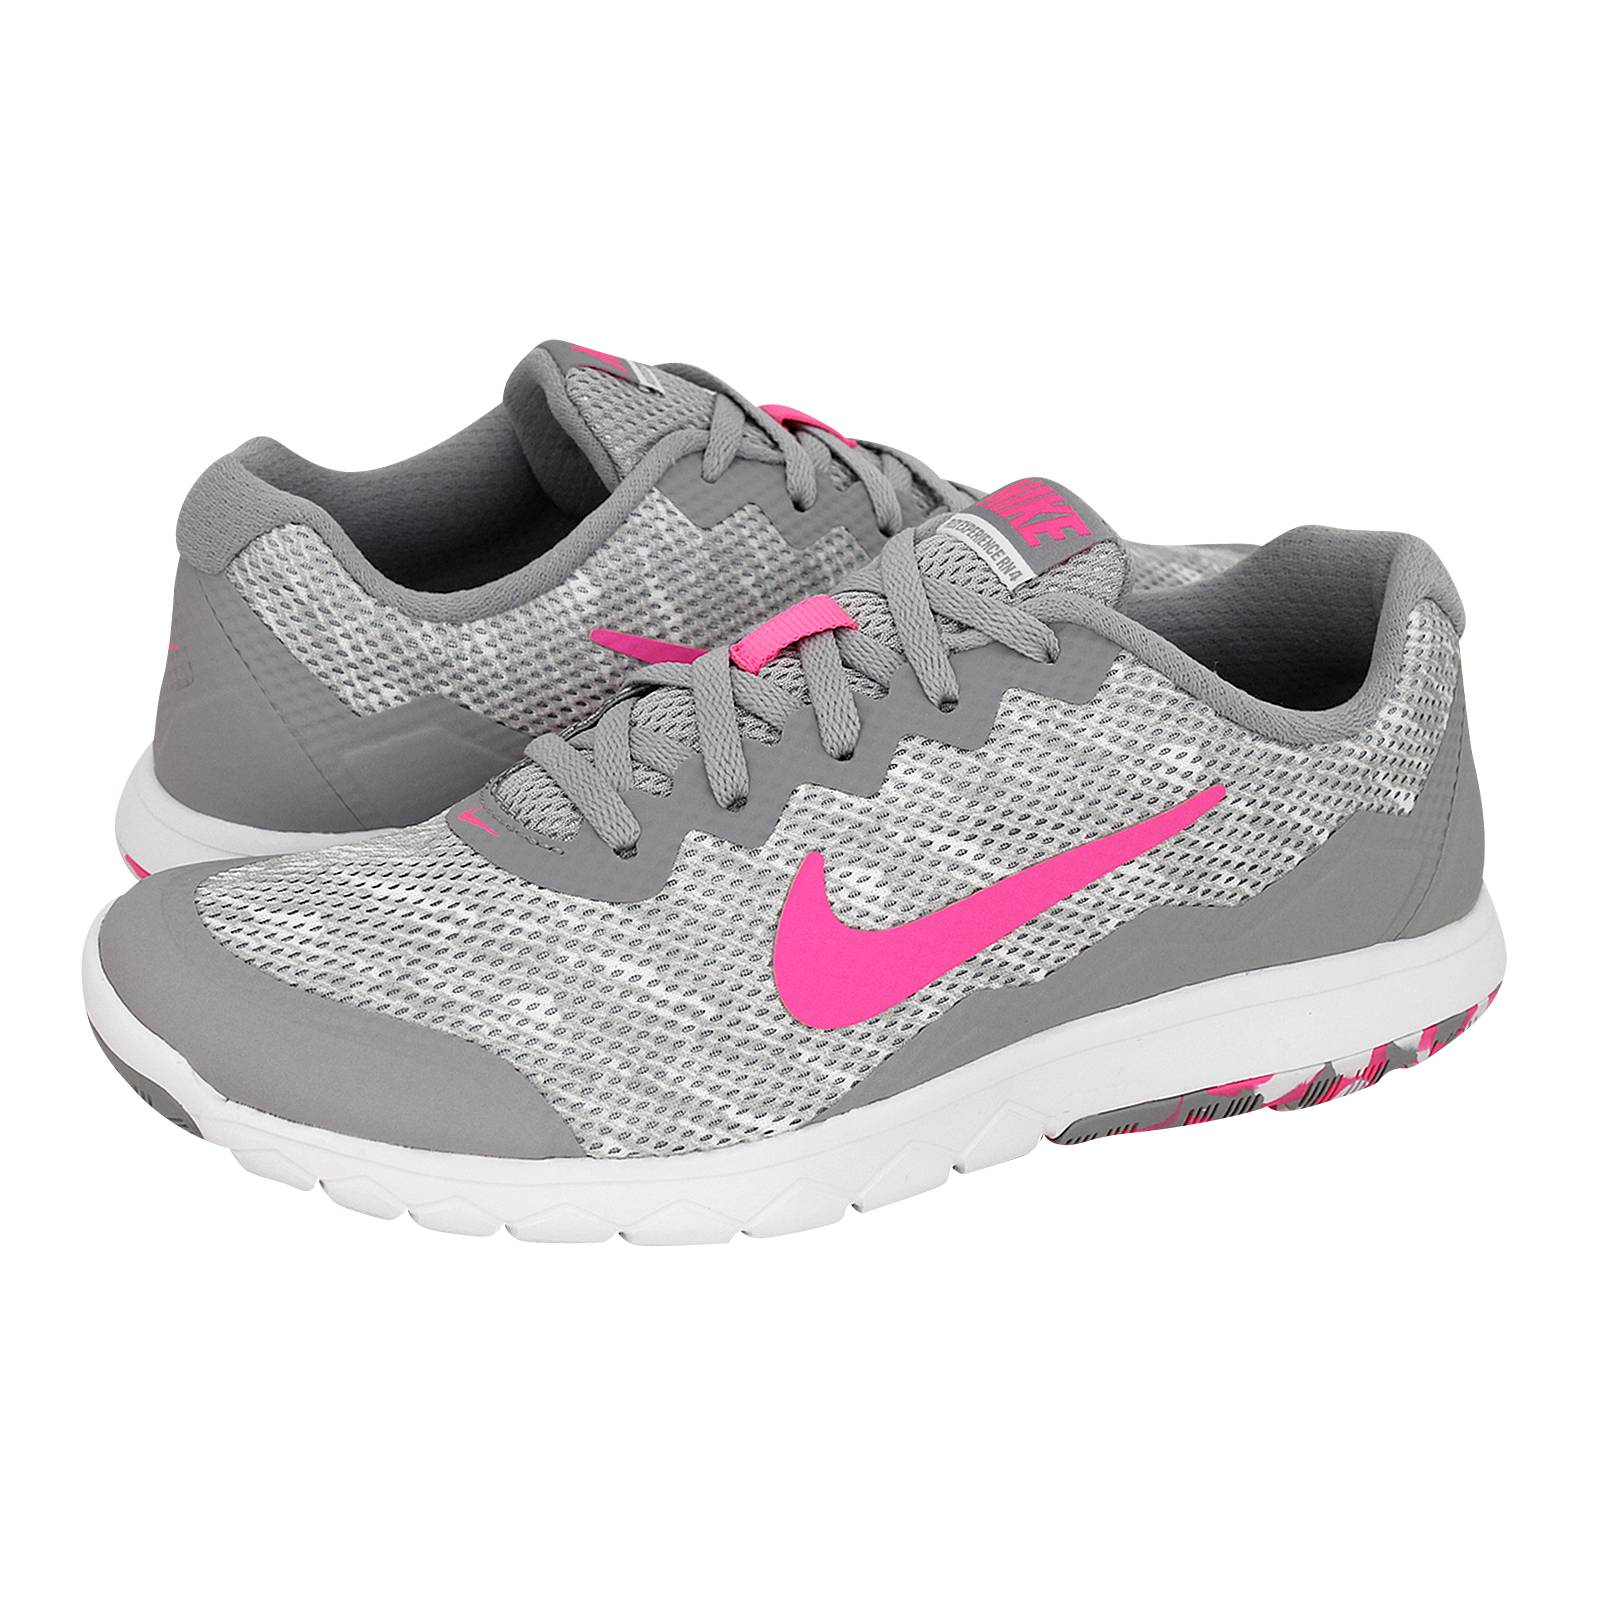 890a92ab60ad Flex Experience RN 4 Prem - Nike Women's athletic shoes made of ...